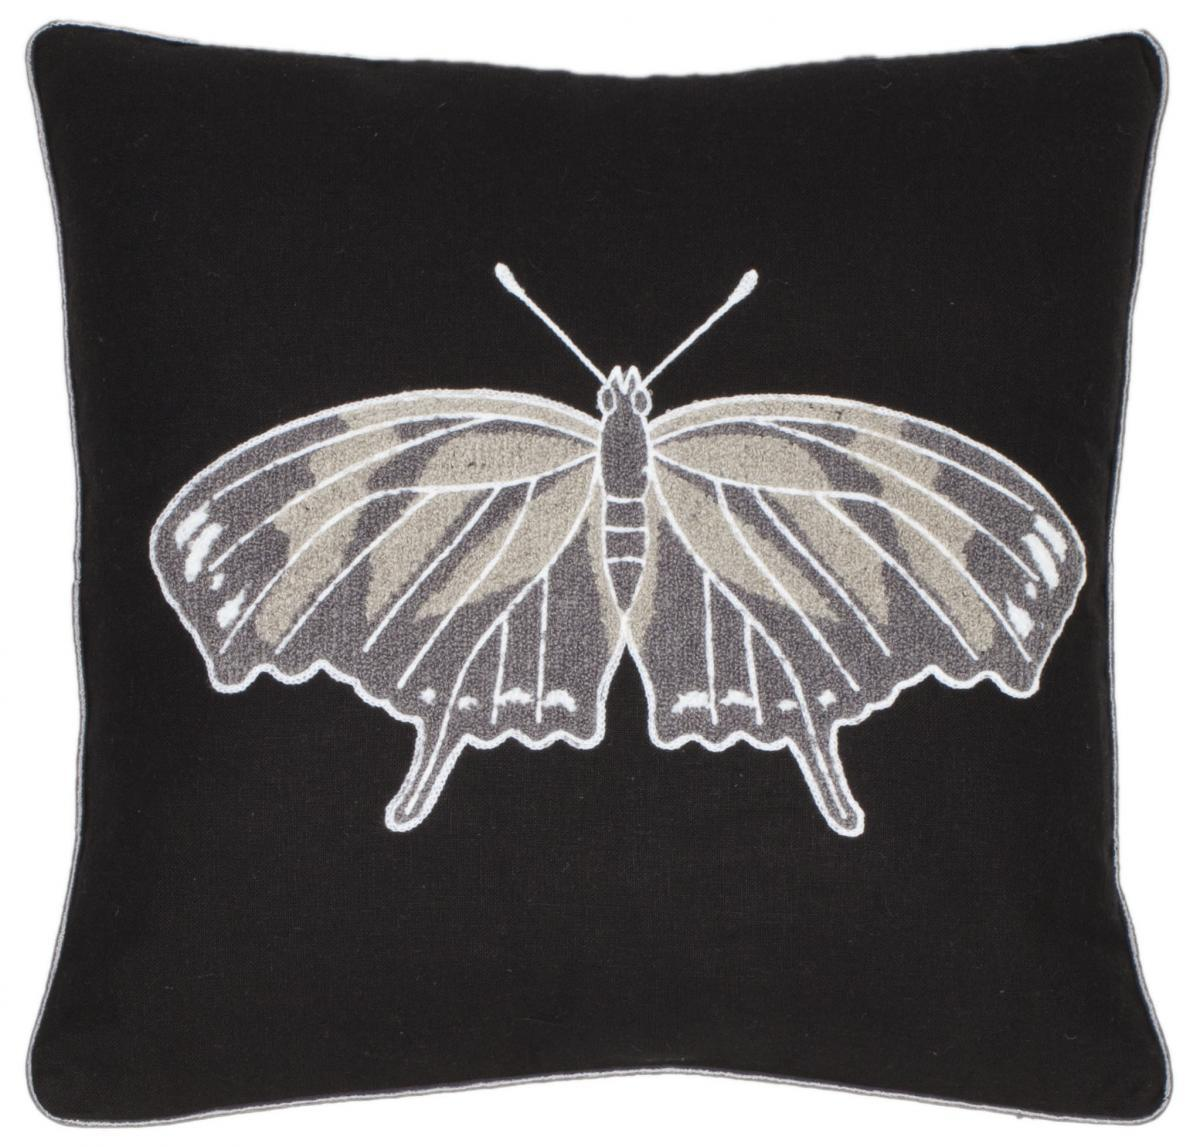 Motoro Ray Pillow.